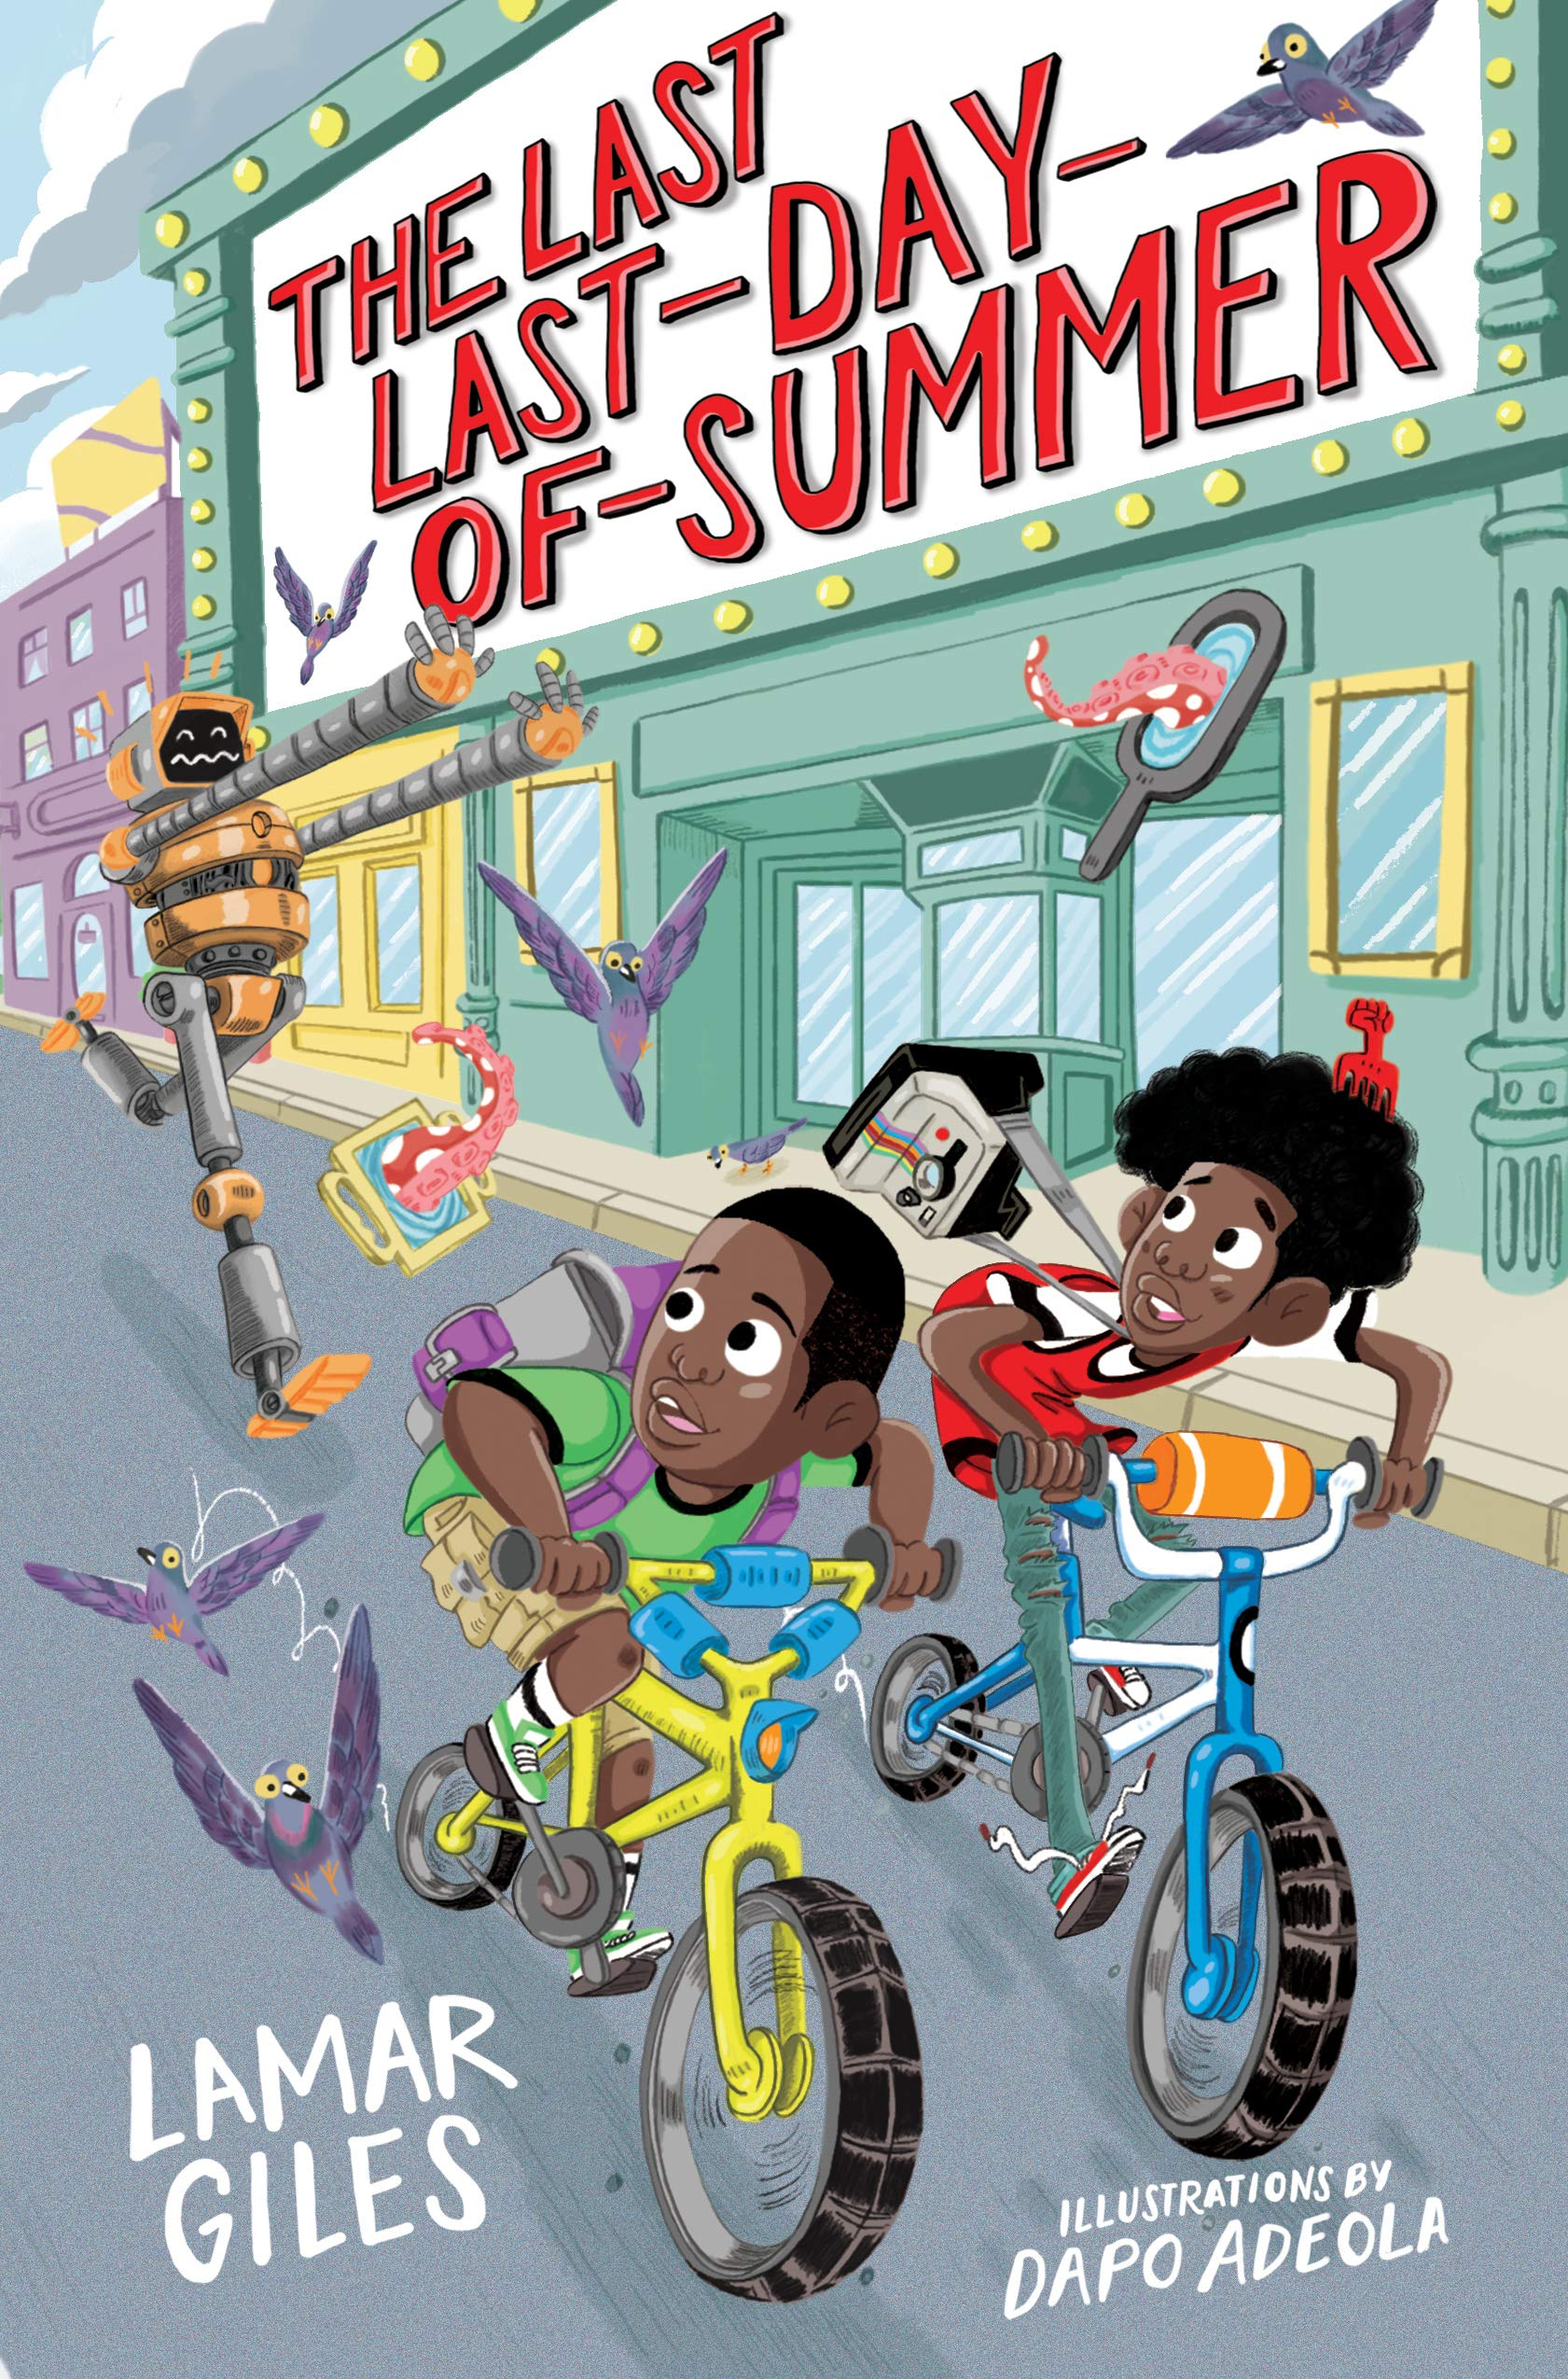 The Last Last-Day-of-Summer (A Legendary Alston Boys Adventure): Giles,  Lamar, Brooks, Derick: 9781328460837: Amazon.com: Books